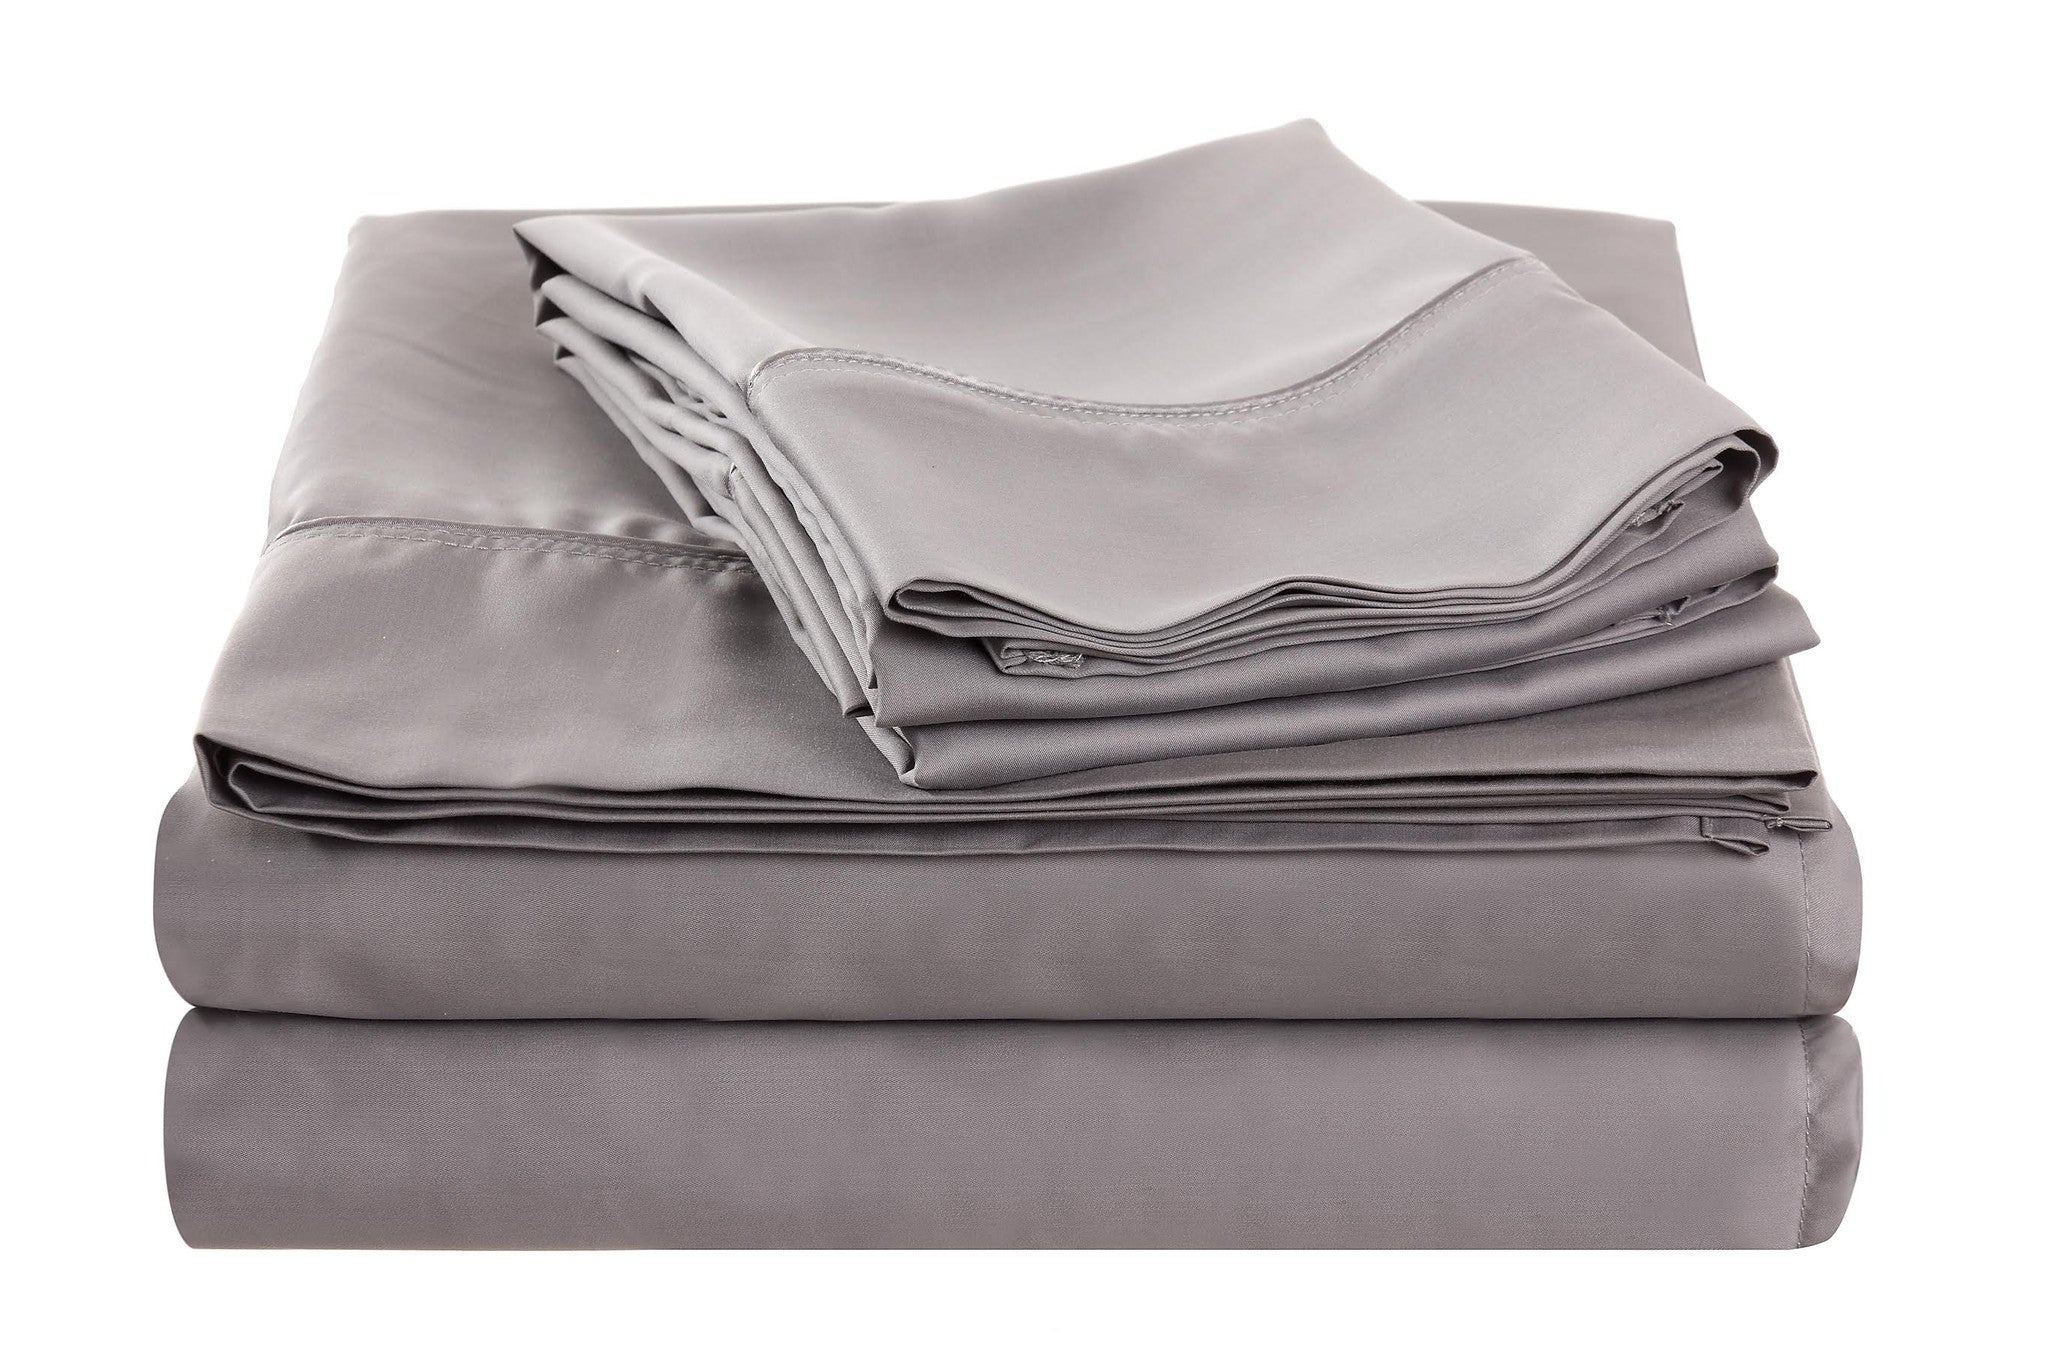 home reviews sheet microfiber comfort sheets select clara wayfair charlton bed pdx set bath clark comforter